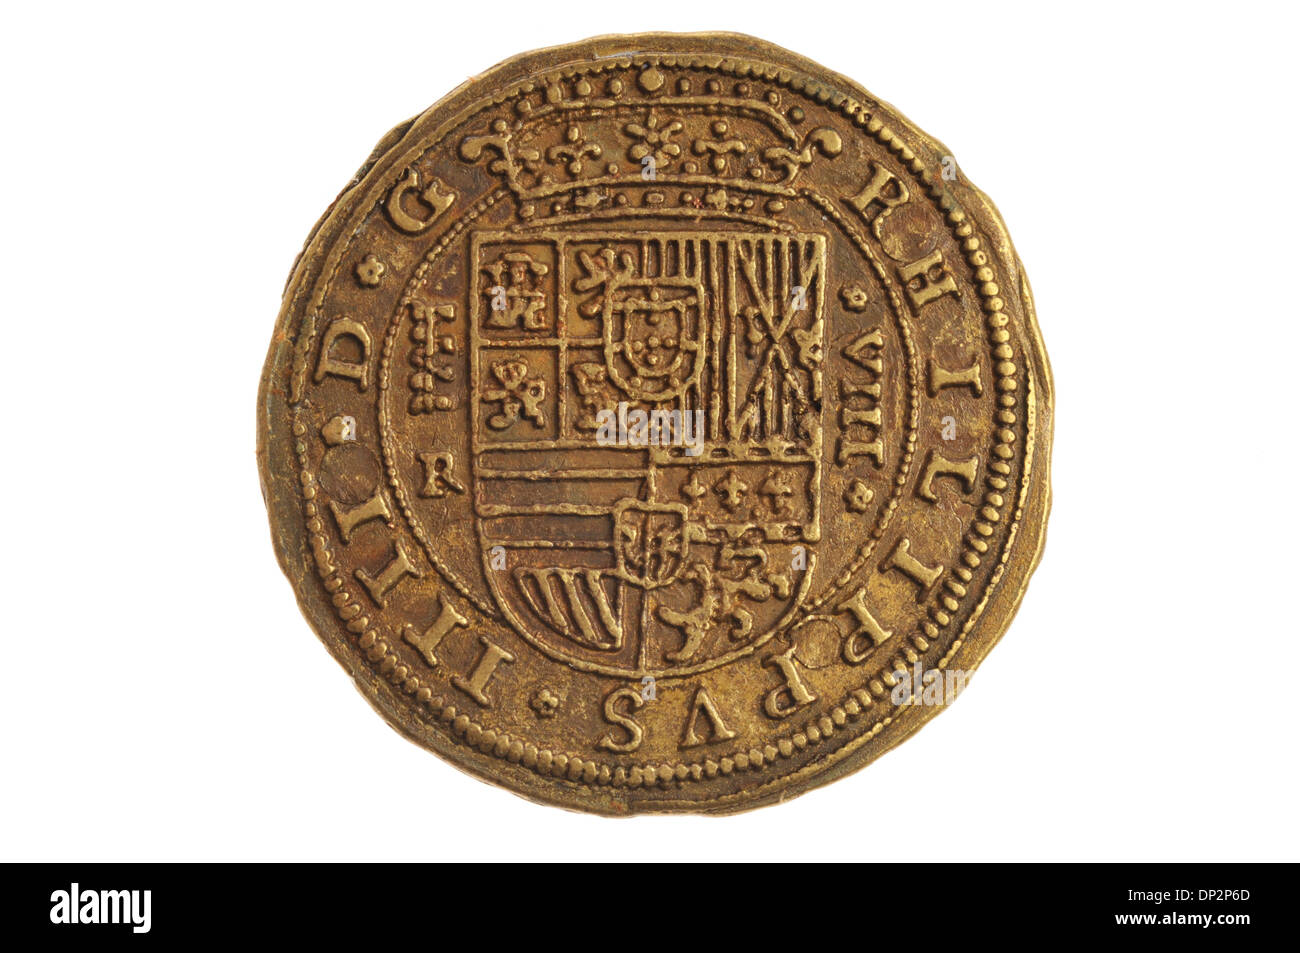 replica of ancient medieval coin - Stock Image